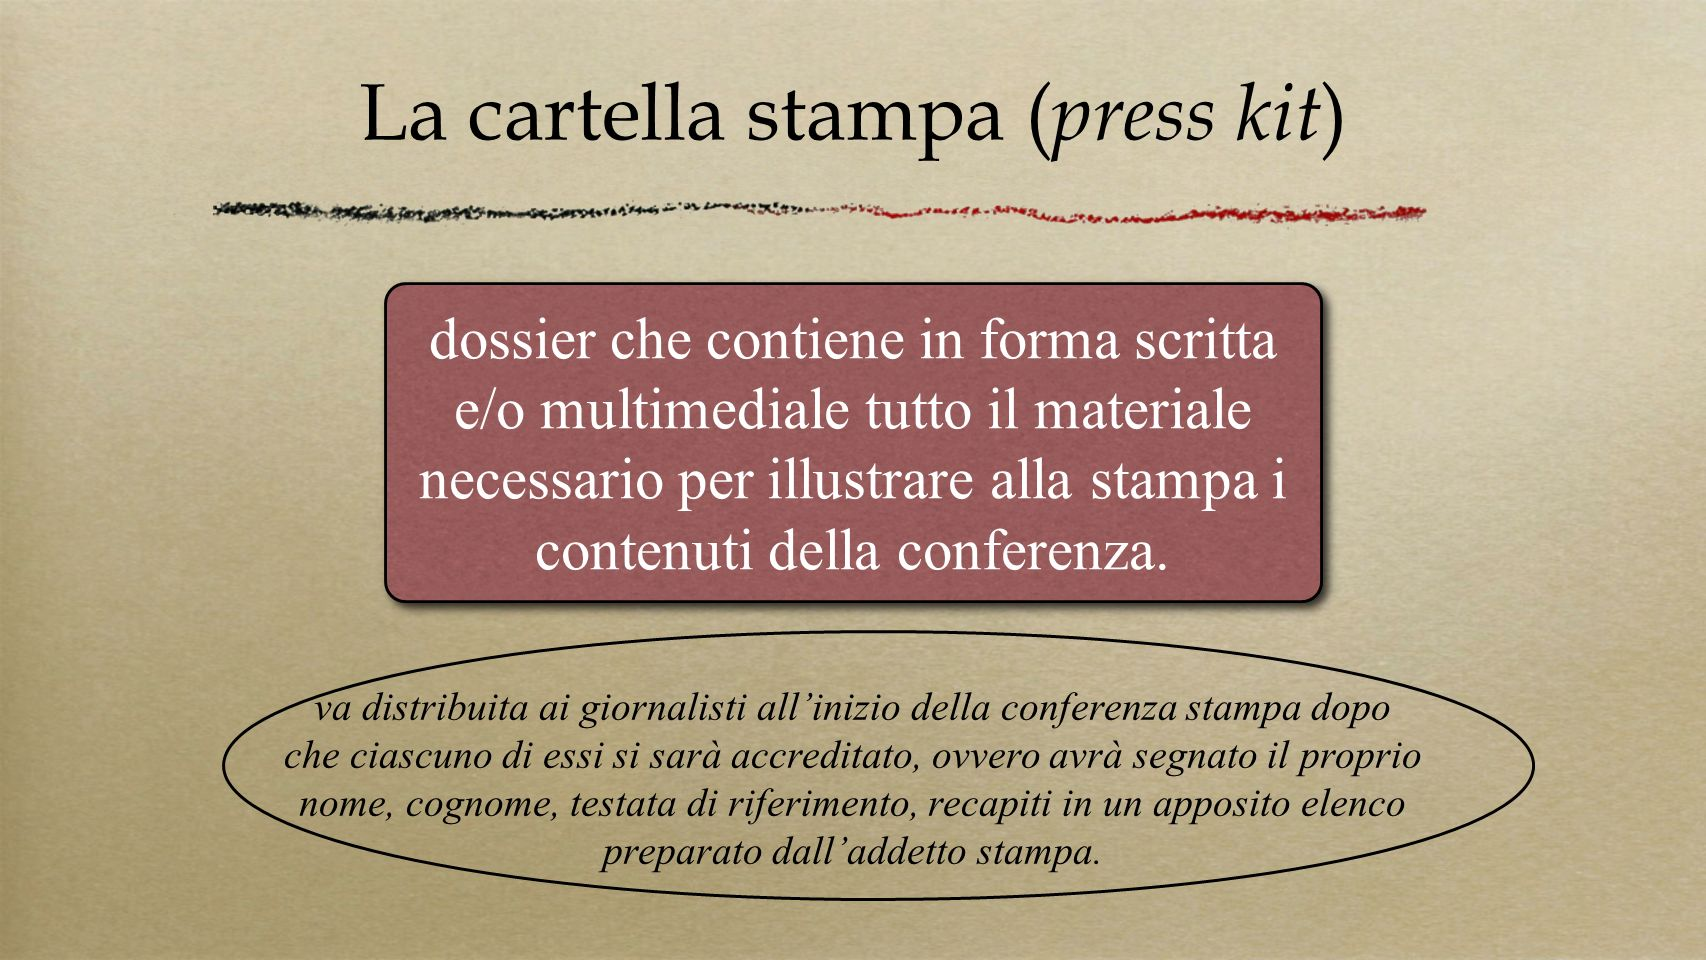 La cartella stampa ( press kit ) dossier che contiene in forma scritta e/o multimediale tutto il materiale necessario per illustrare alla stampa i con